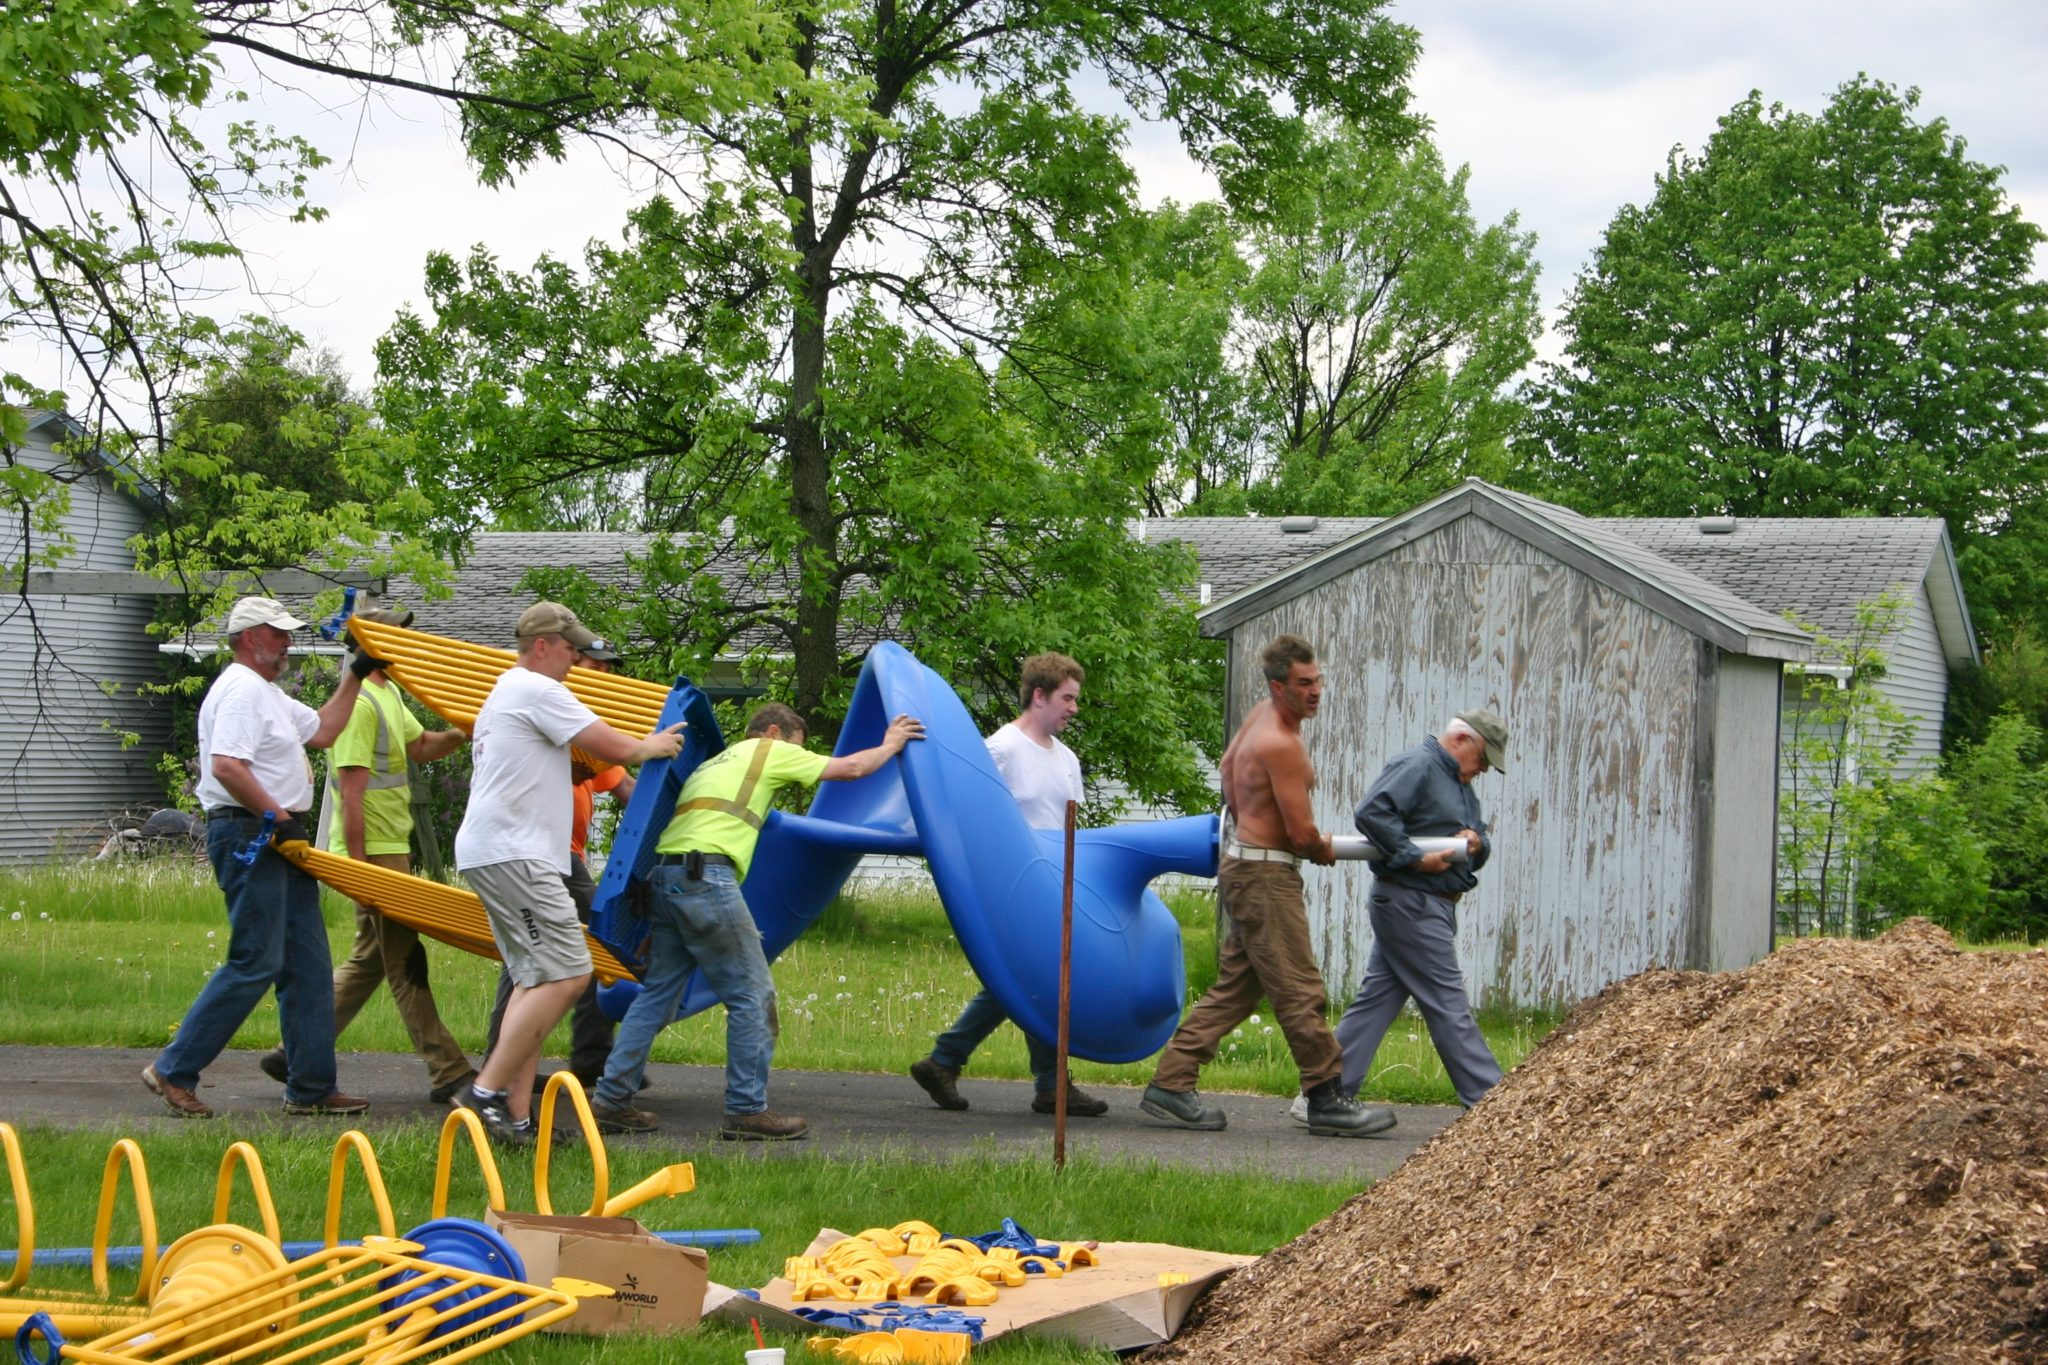 men carrying the pieces for the playground equipment